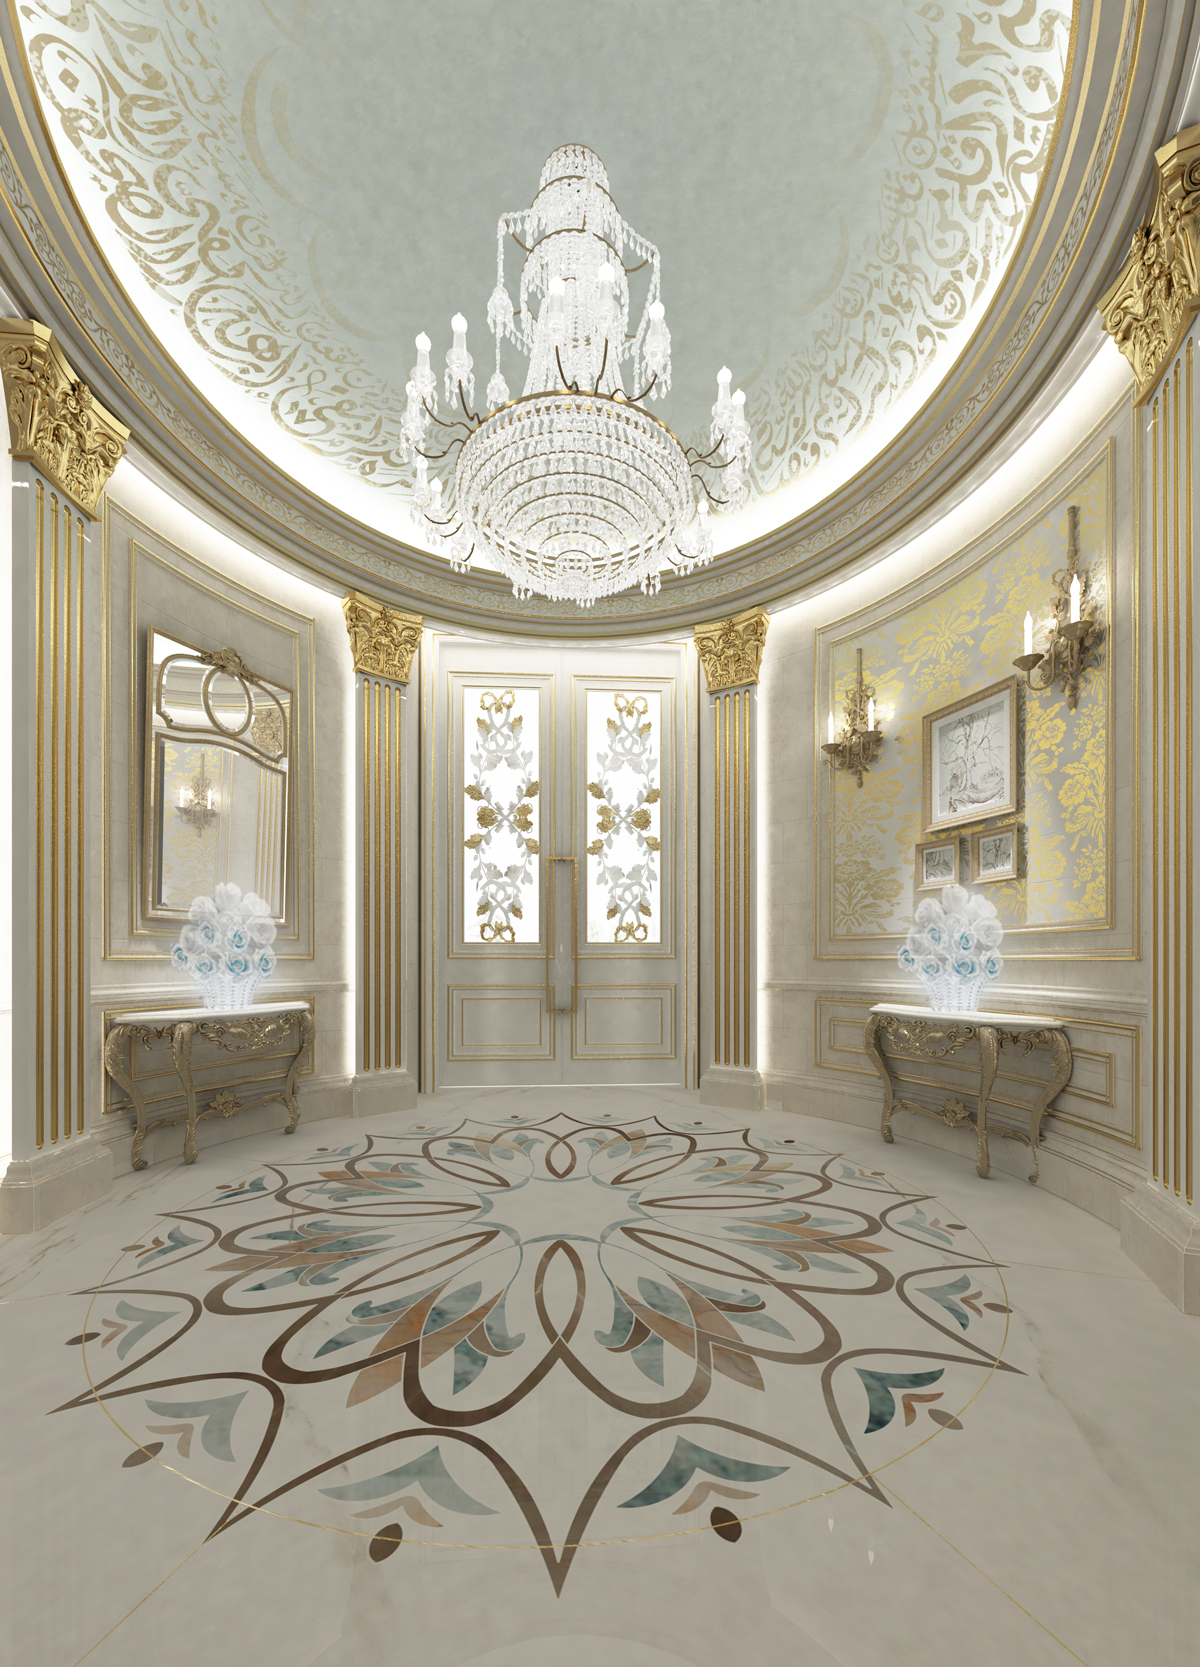 Decorating Ideas for a Grand Foyer